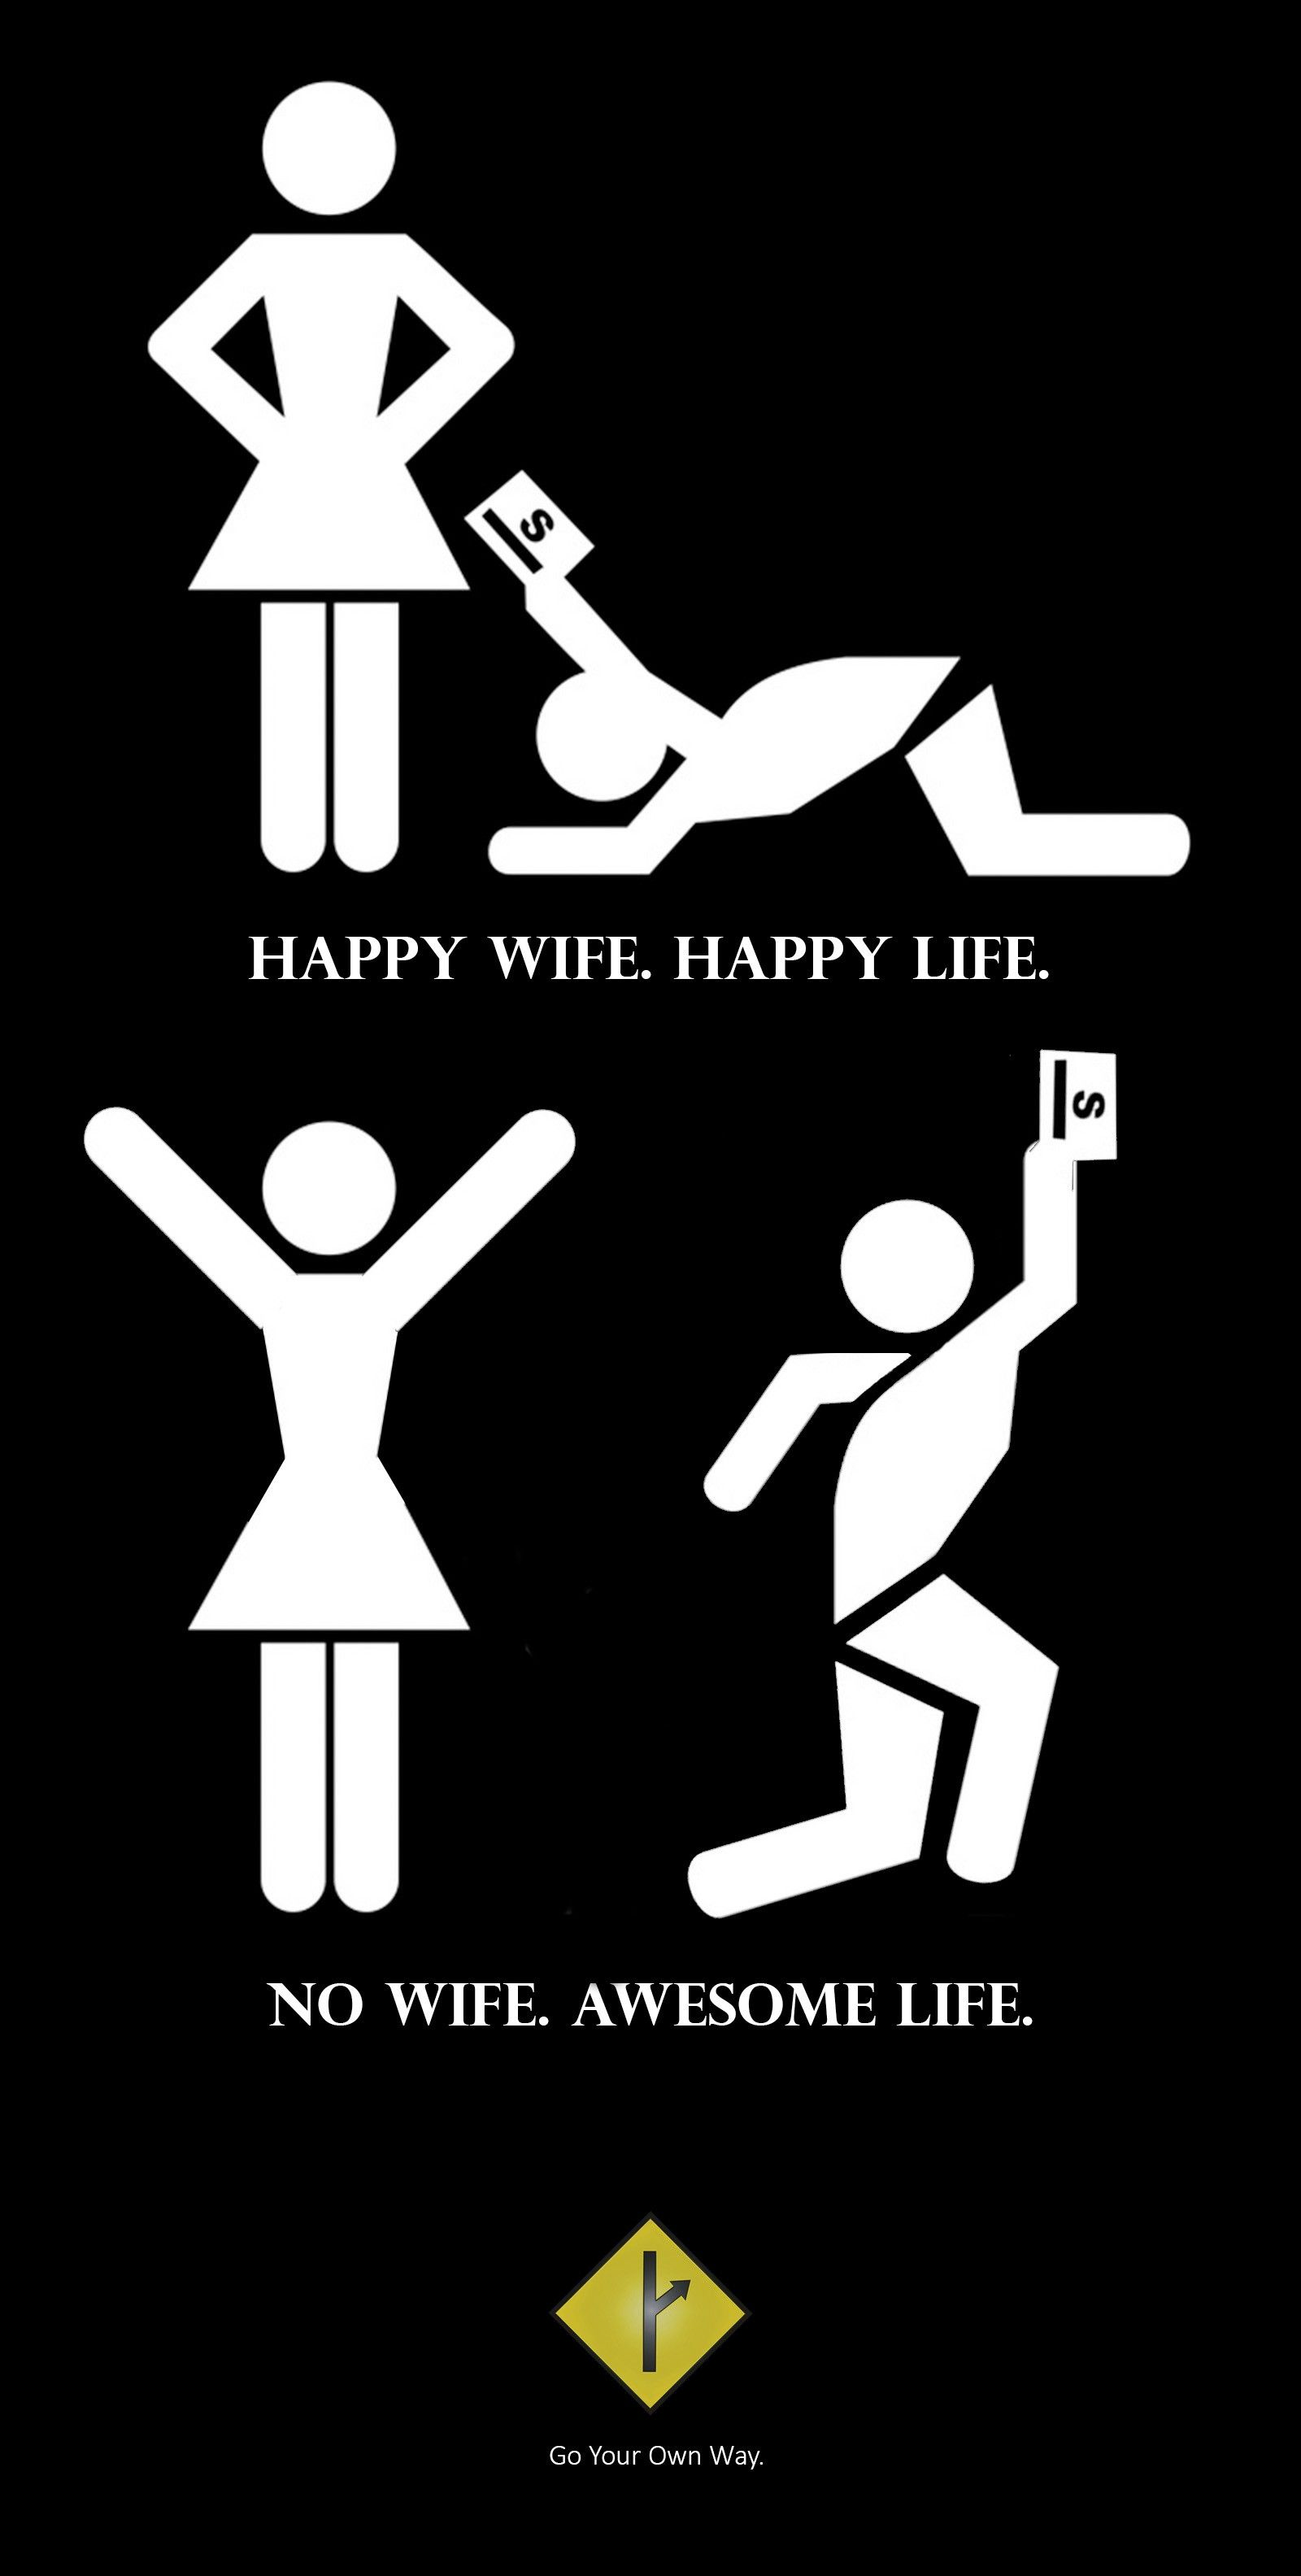 No Wife Awesome Life | MGTOW |...